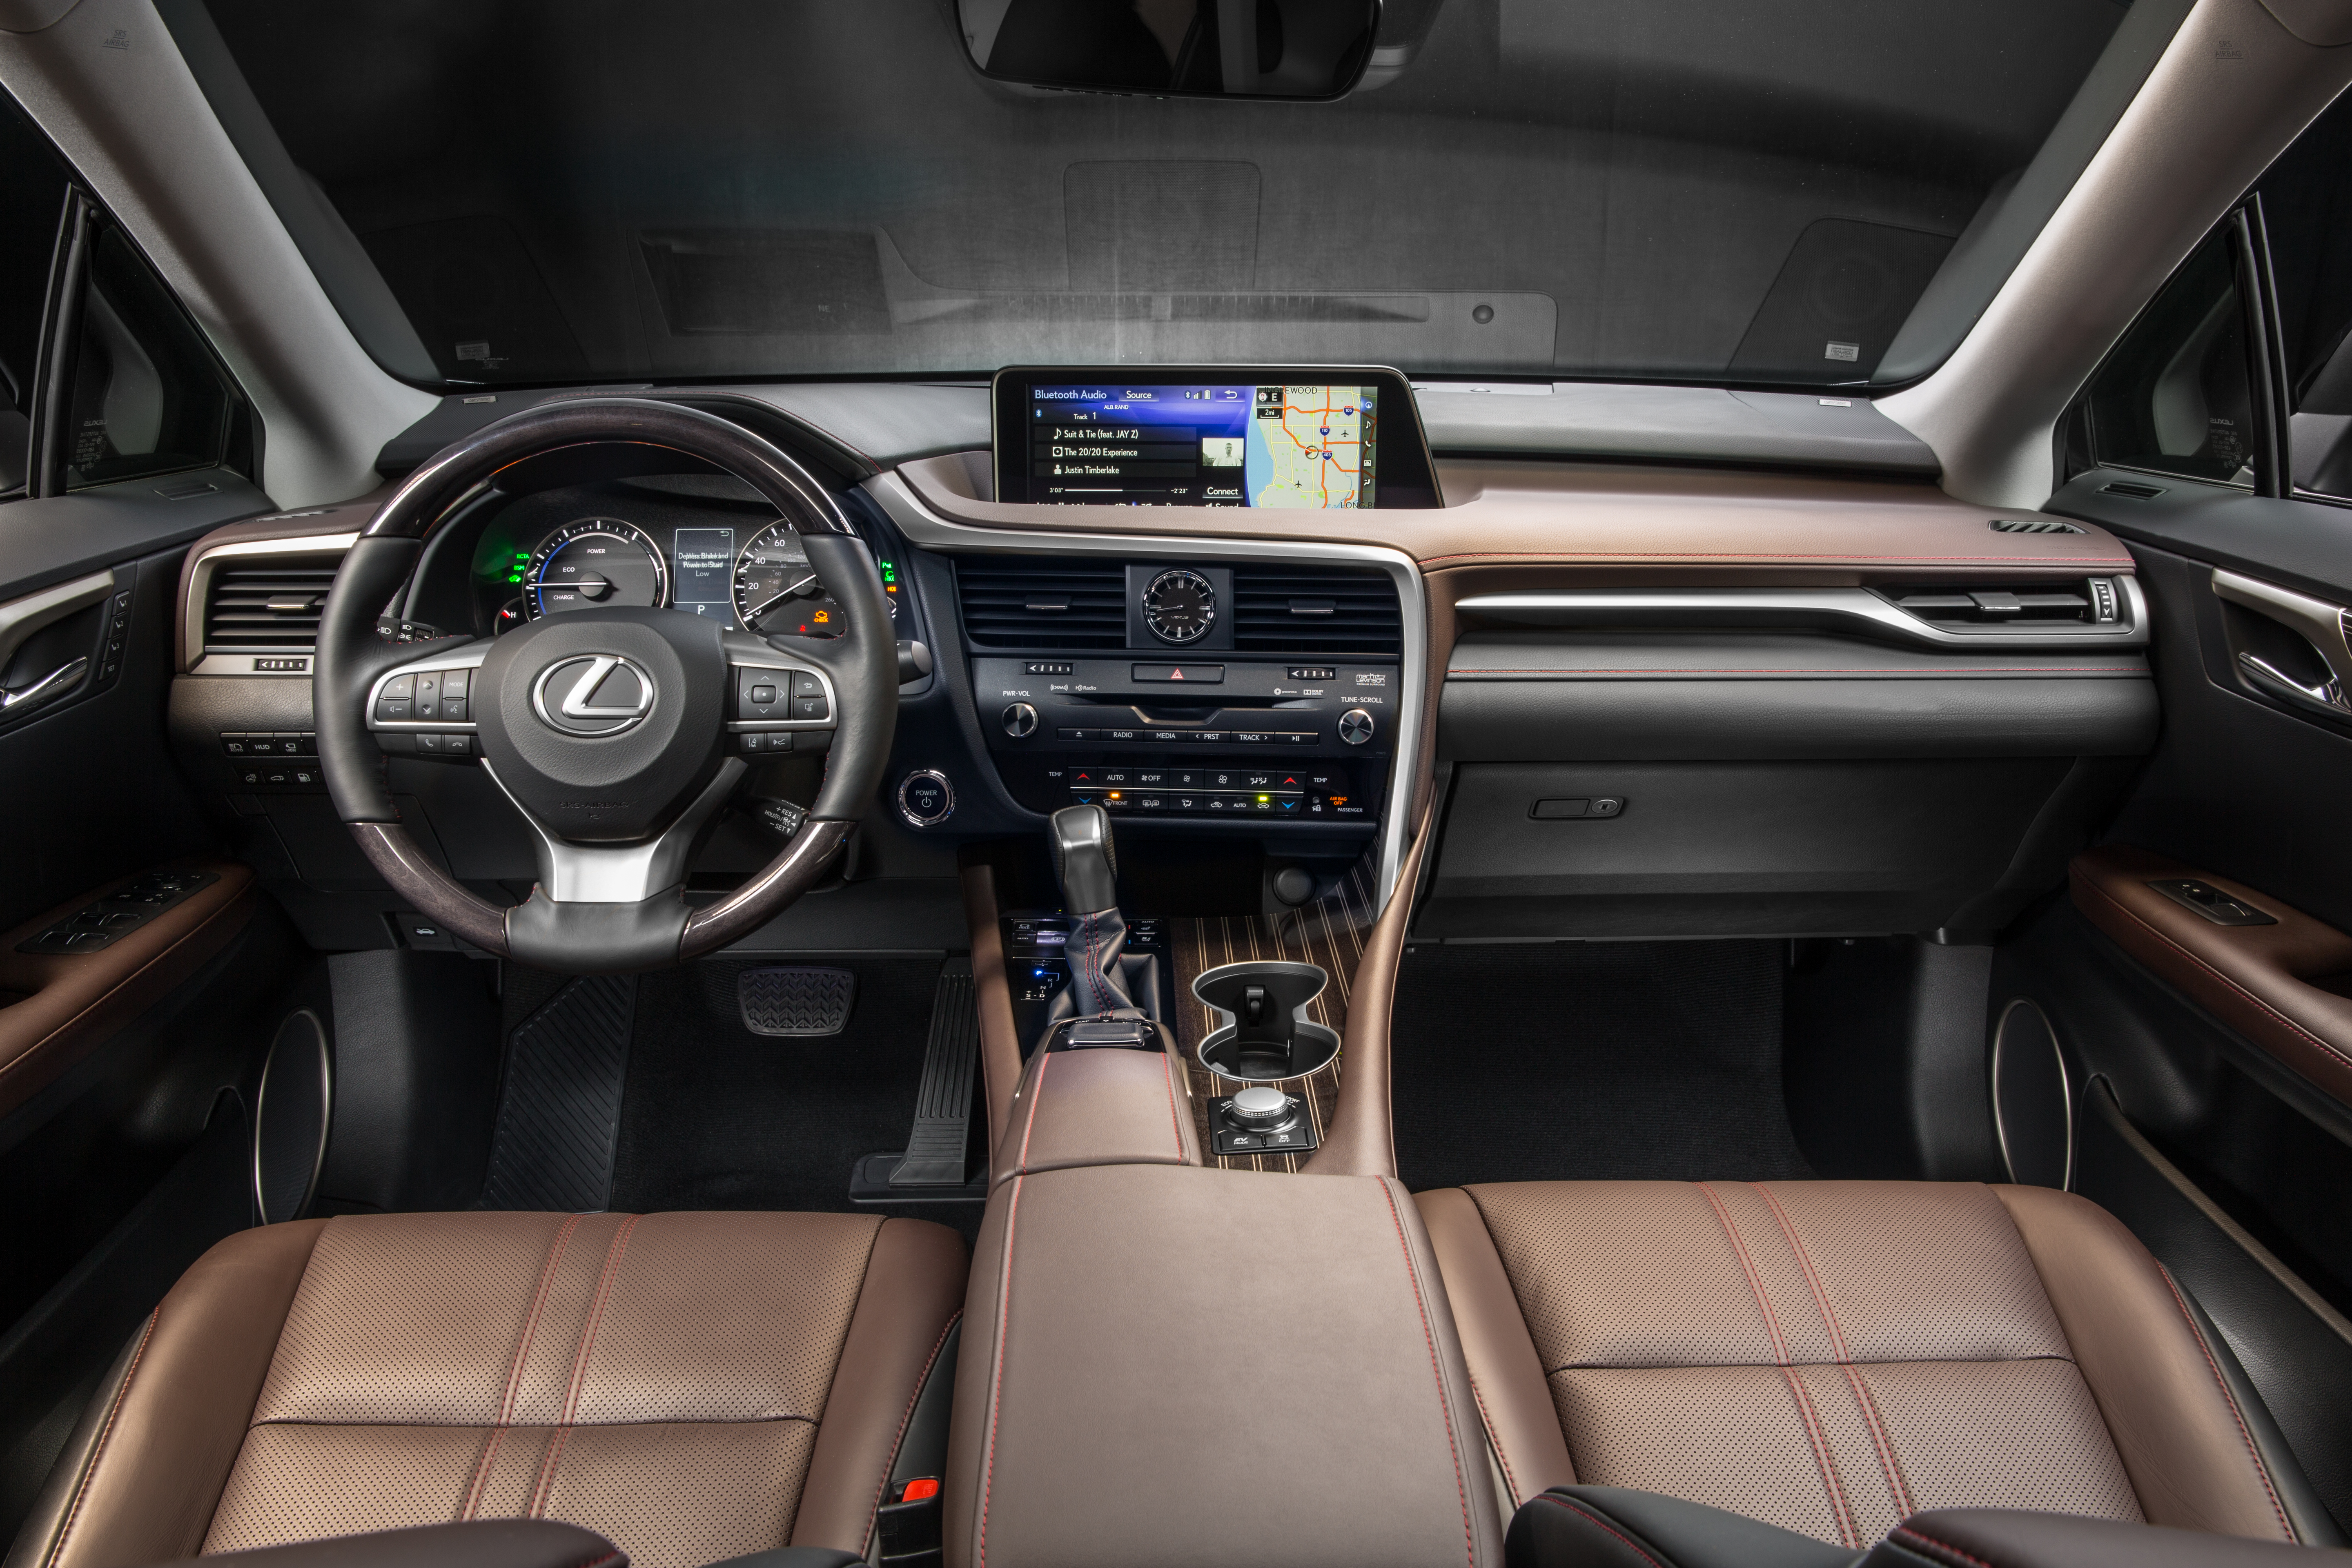 essai lexus rx450h seul dans la full. Black Bedroom Furniture Sets. Home Design Ideas